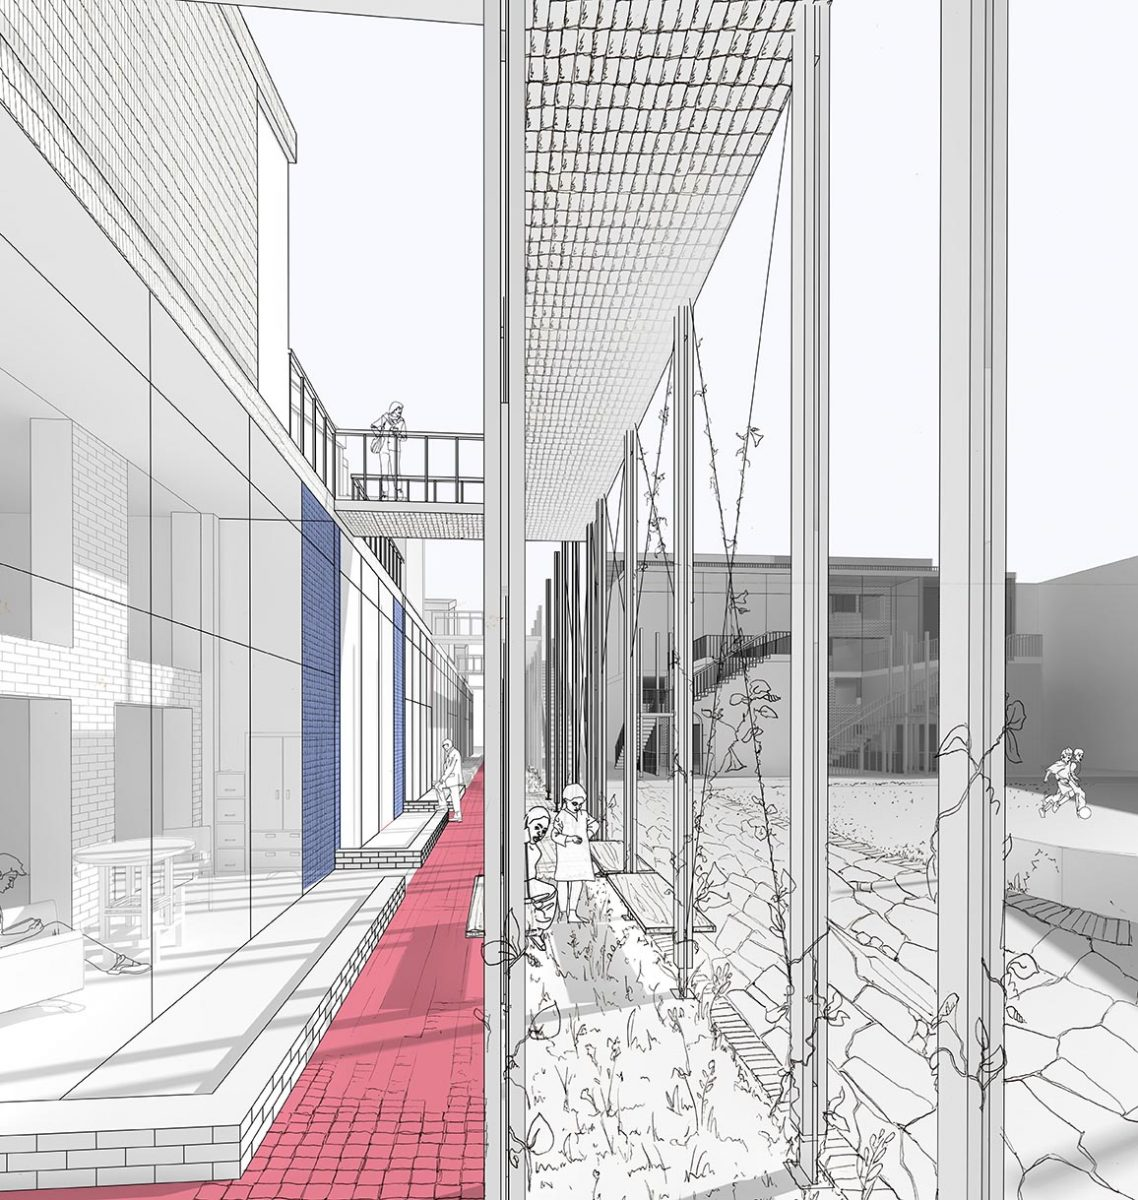 Raised walkways, green collonade and changes in materials create a series of thresholds betweeen public and private space